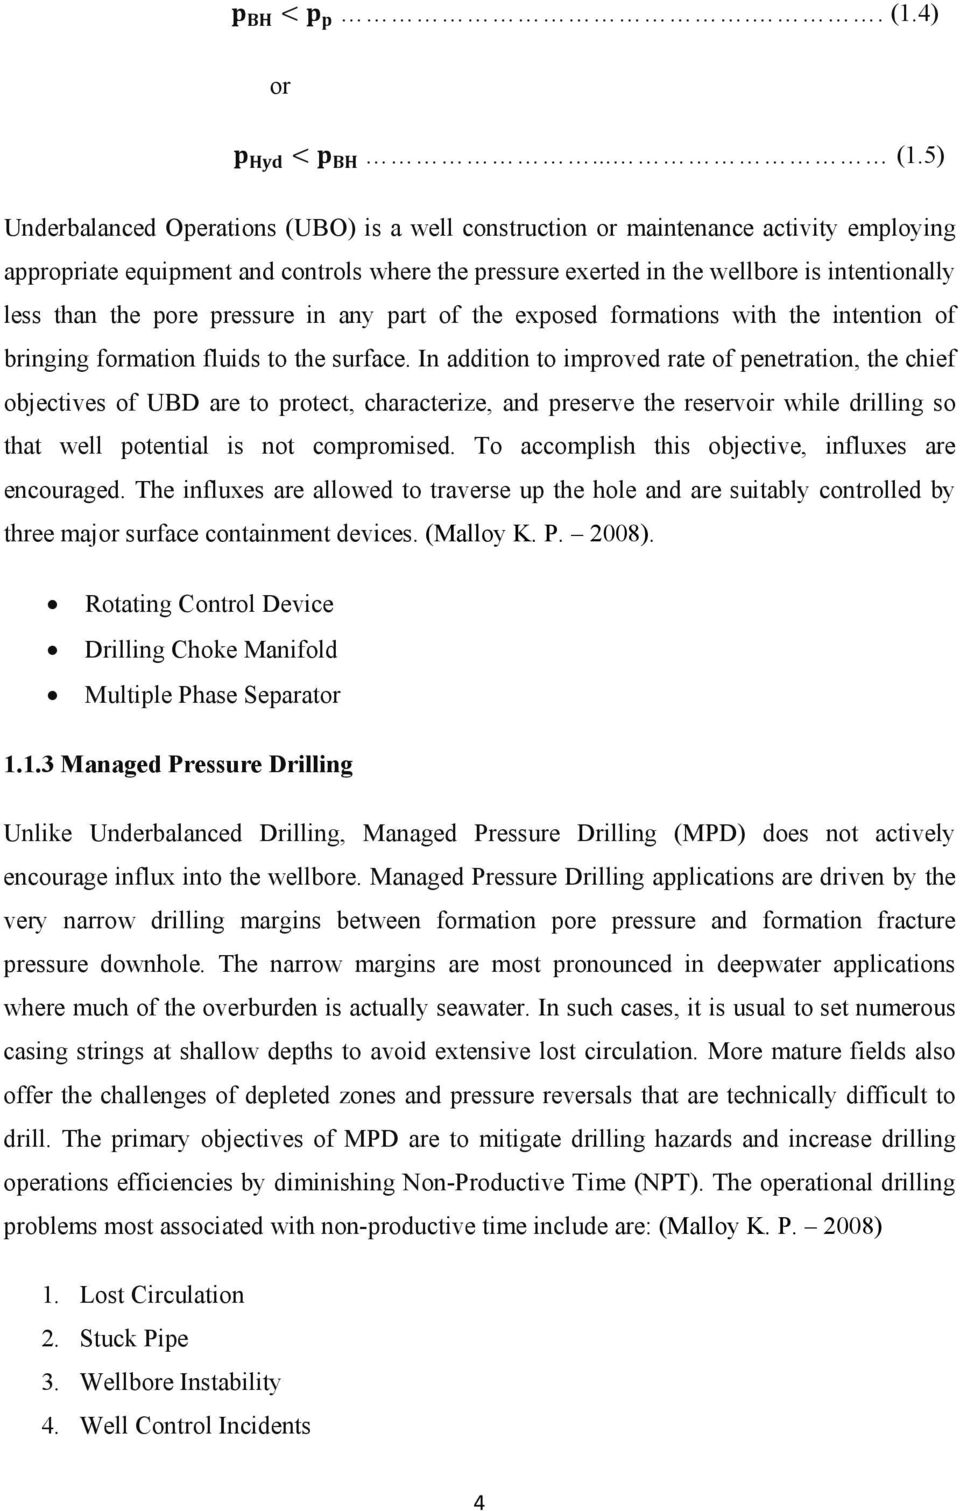 5) Underbalanced Operations (UBO) is a well construction or maintenance activity employing appropriate equipment and controls where the pressure exerted in the wellbore is intentionally less than the